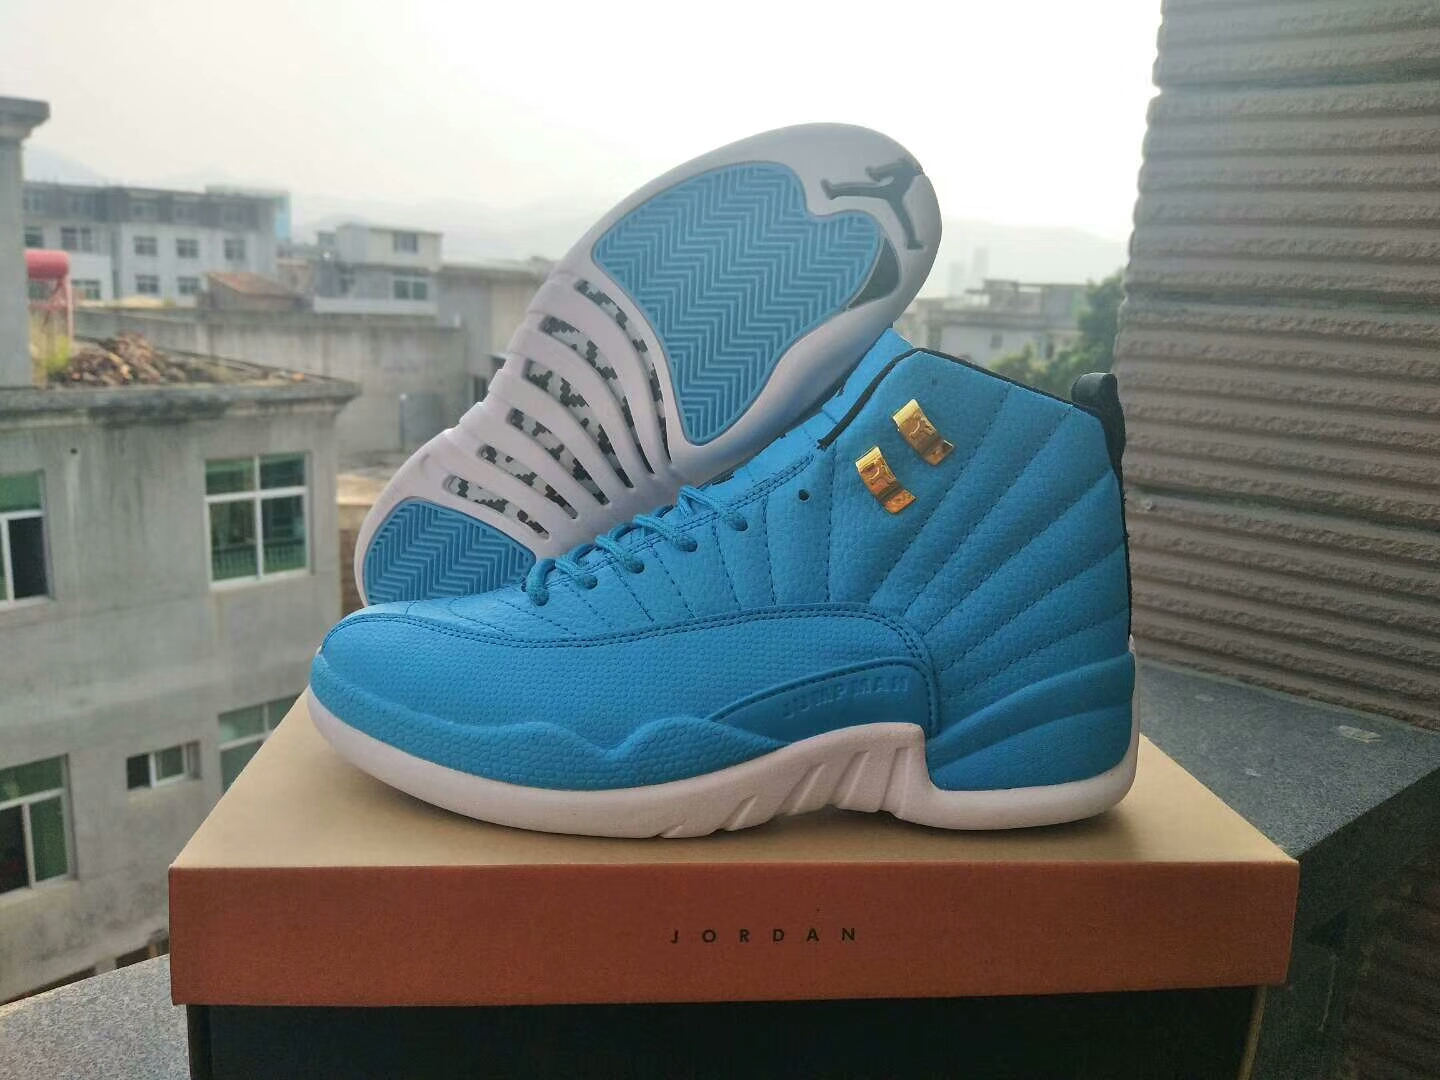 New Air Jordan 12 Retro North Carolina Blue White Gold Shoes